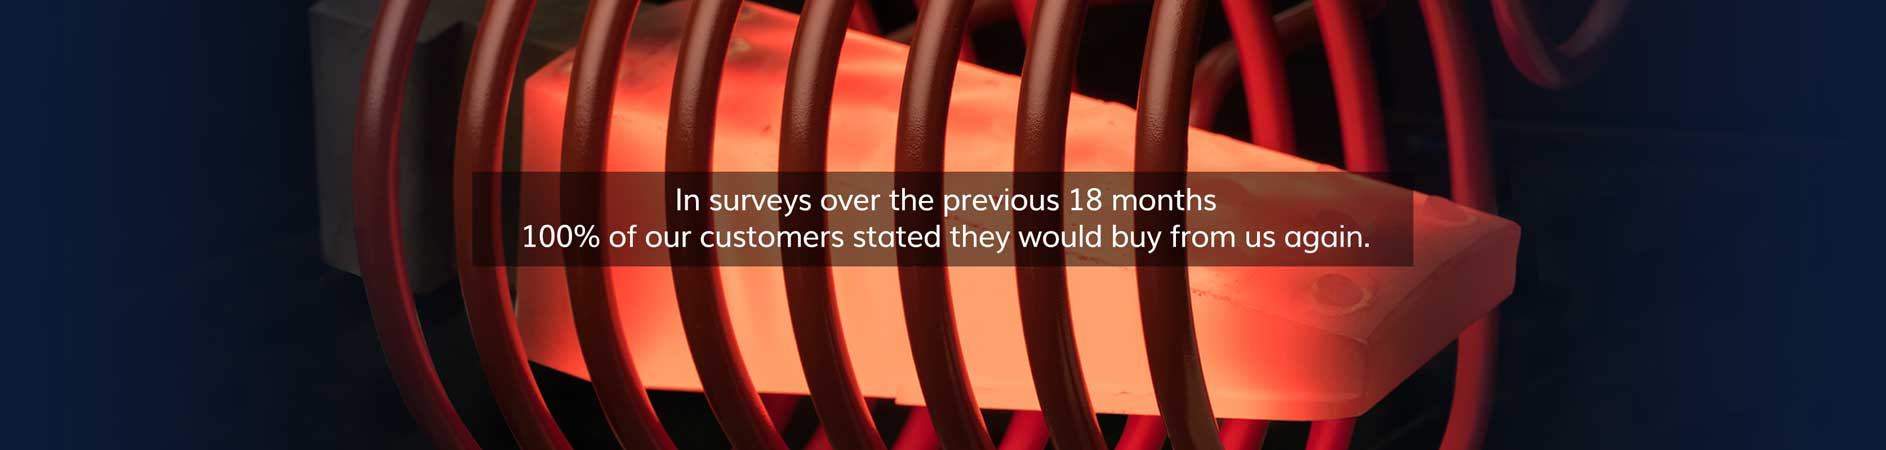 In surveys over the previous 18 months100% of our customers stated they would buy from us again.